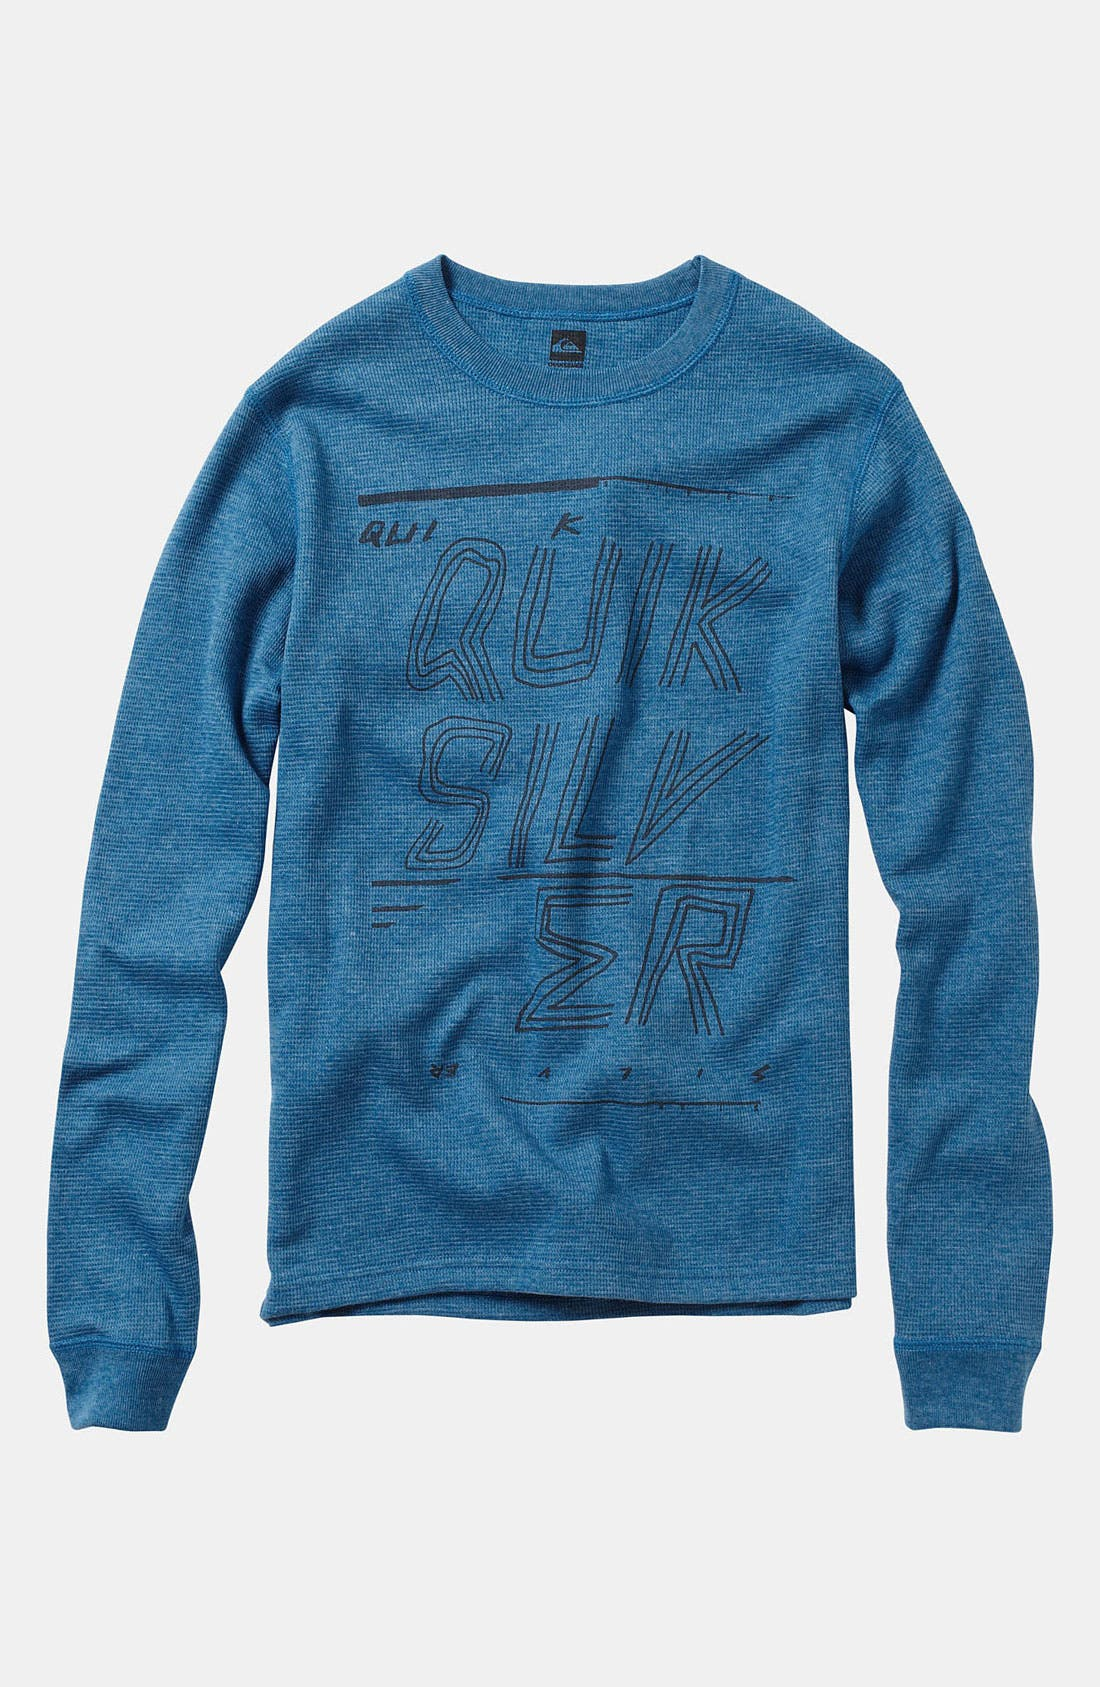 Alternate Image 1 Selected - Quiksilver 'Fast Forward' Thermal Top (Little Boys)